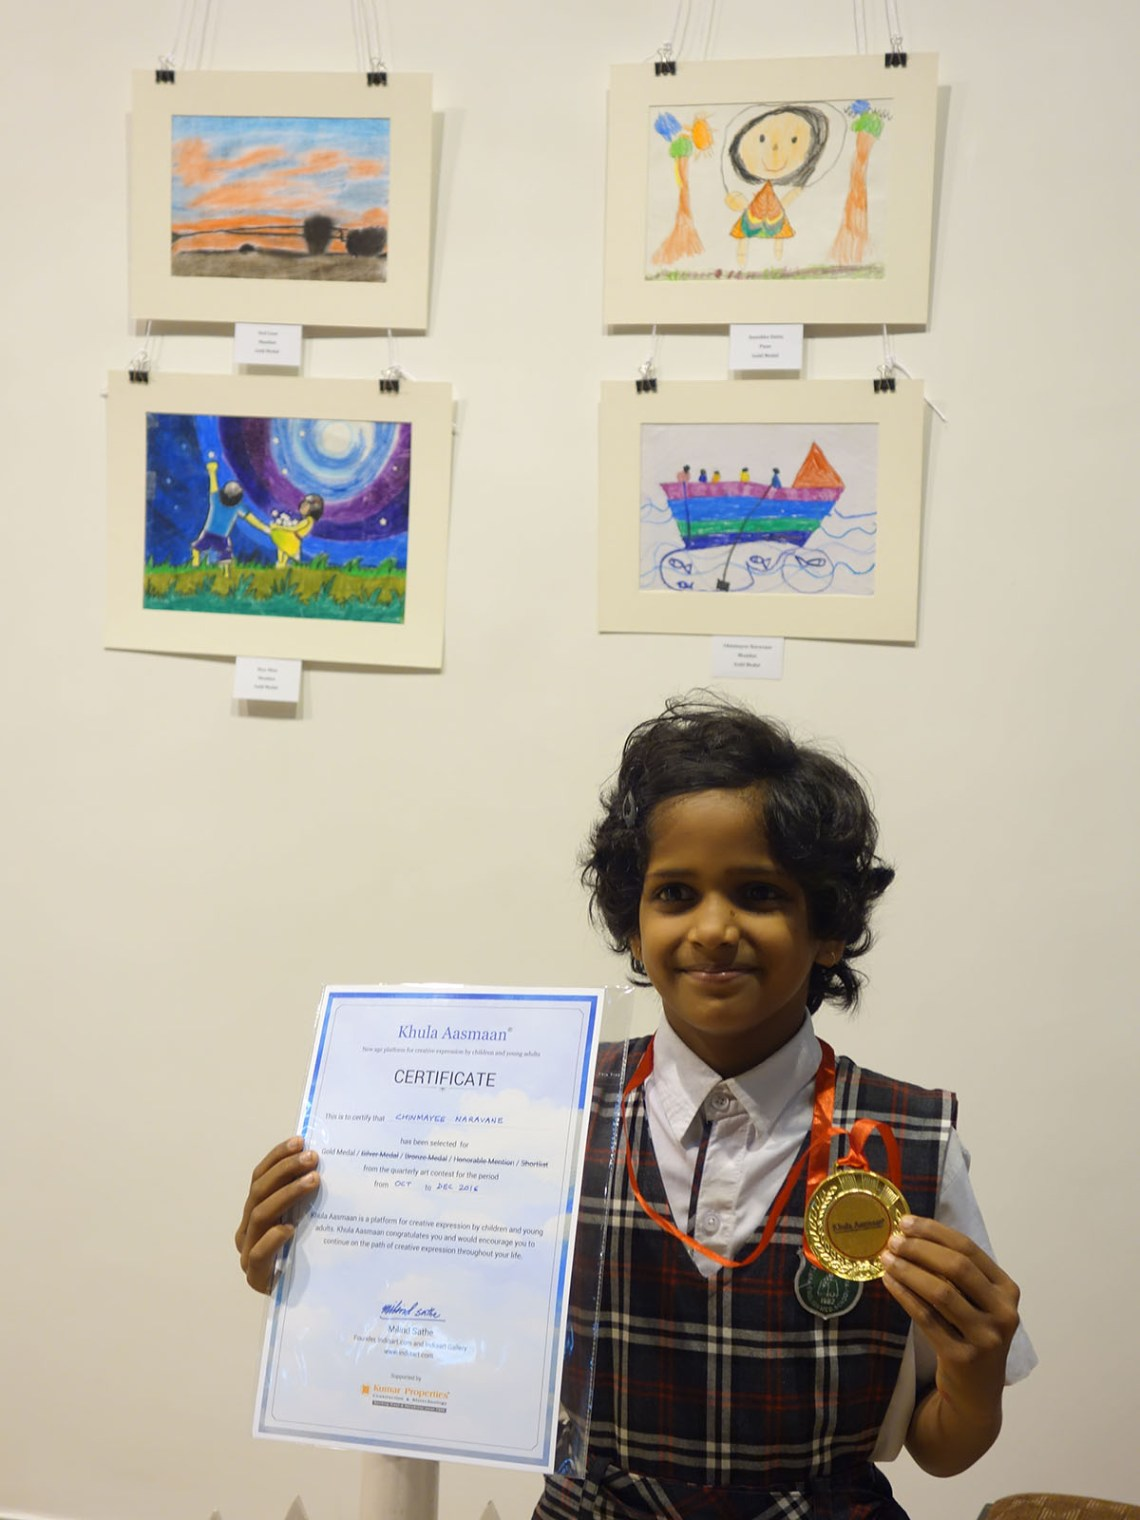 Chinmayee Naravane with her medal and certificate at Khula Aasmaan art exhibition at Mumbai - October 2017. Chinmayee's video is part of videos of medal winning children.